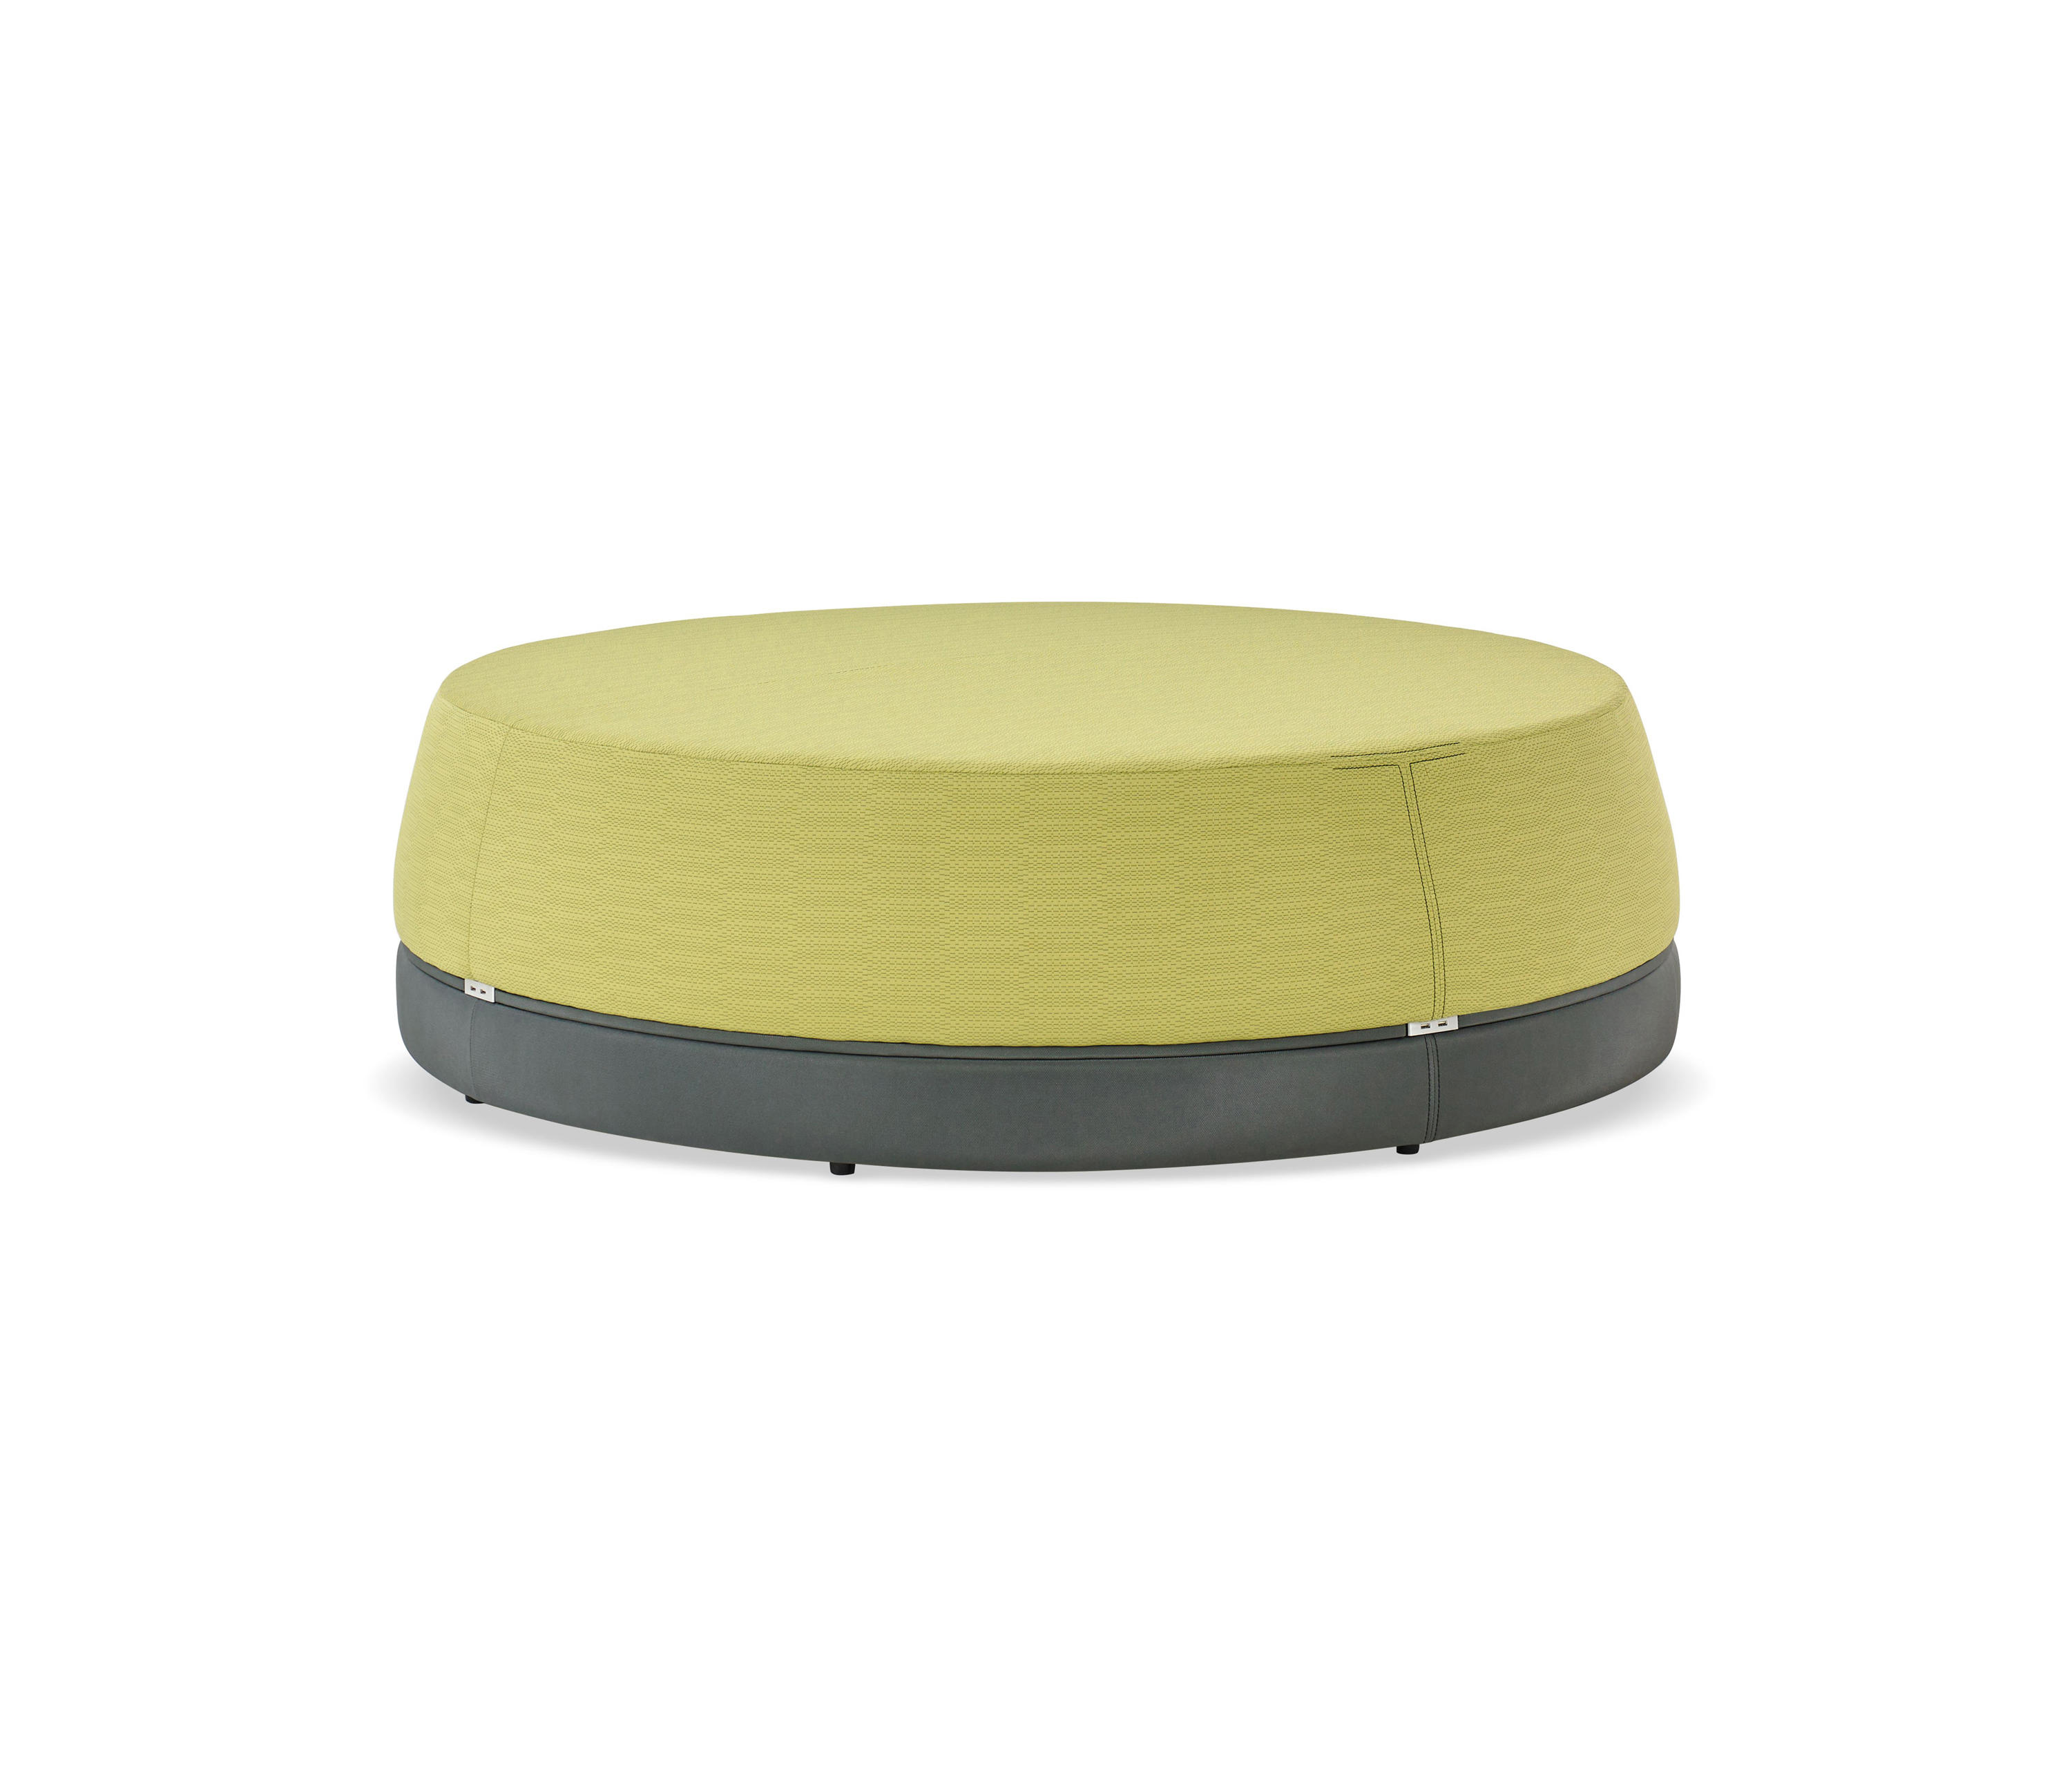 Groovy Qui Large Ottoman With Usb Power Architonic Caraccident5 Cool Chair Designs And Ideas Caraccident5Info